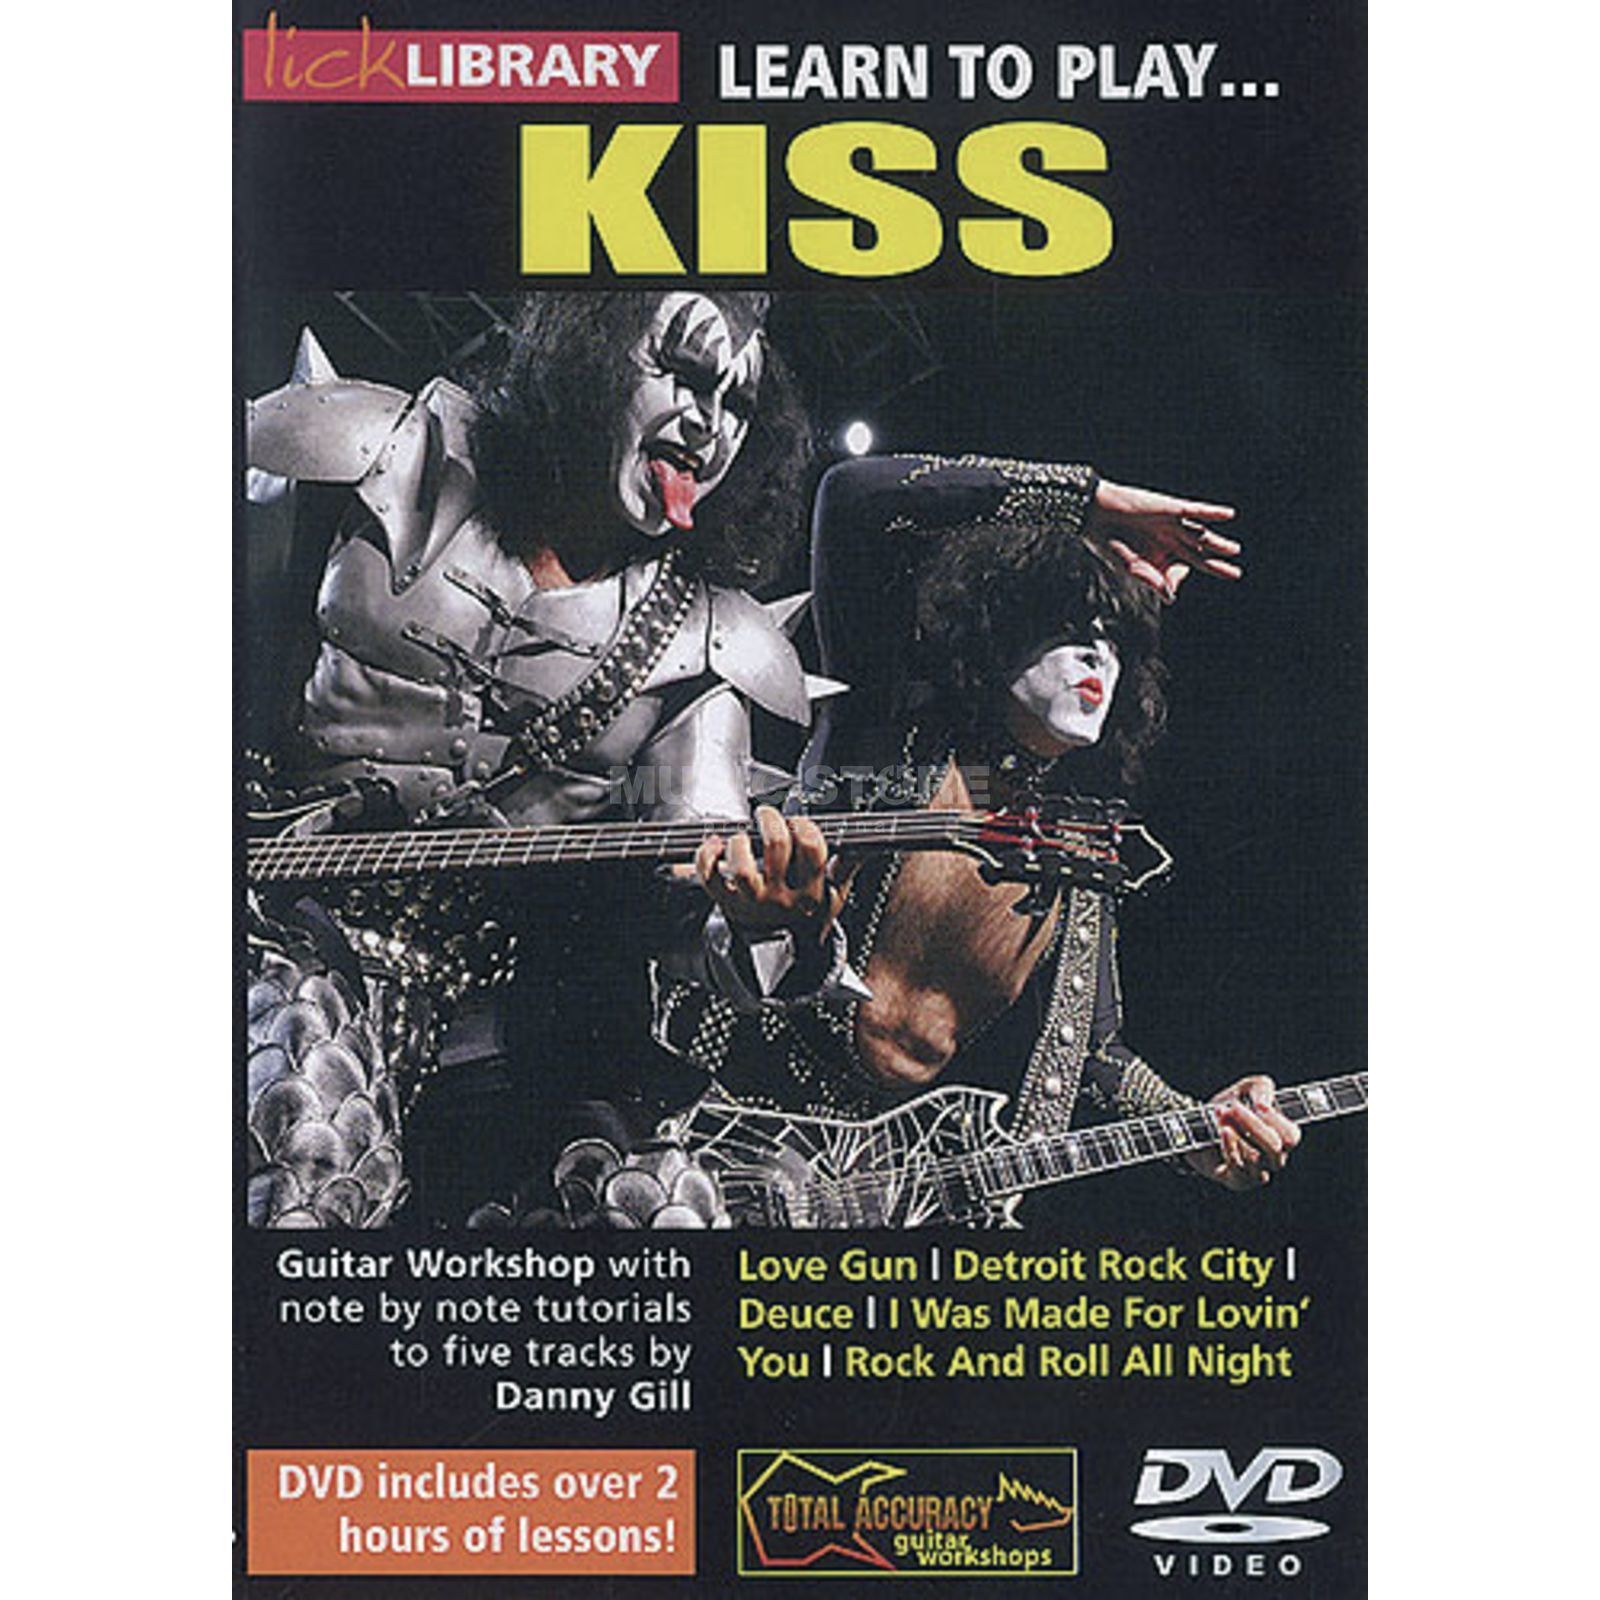 Roadrock International Lick Library: Learn To Play Kiss DVD Produktbild